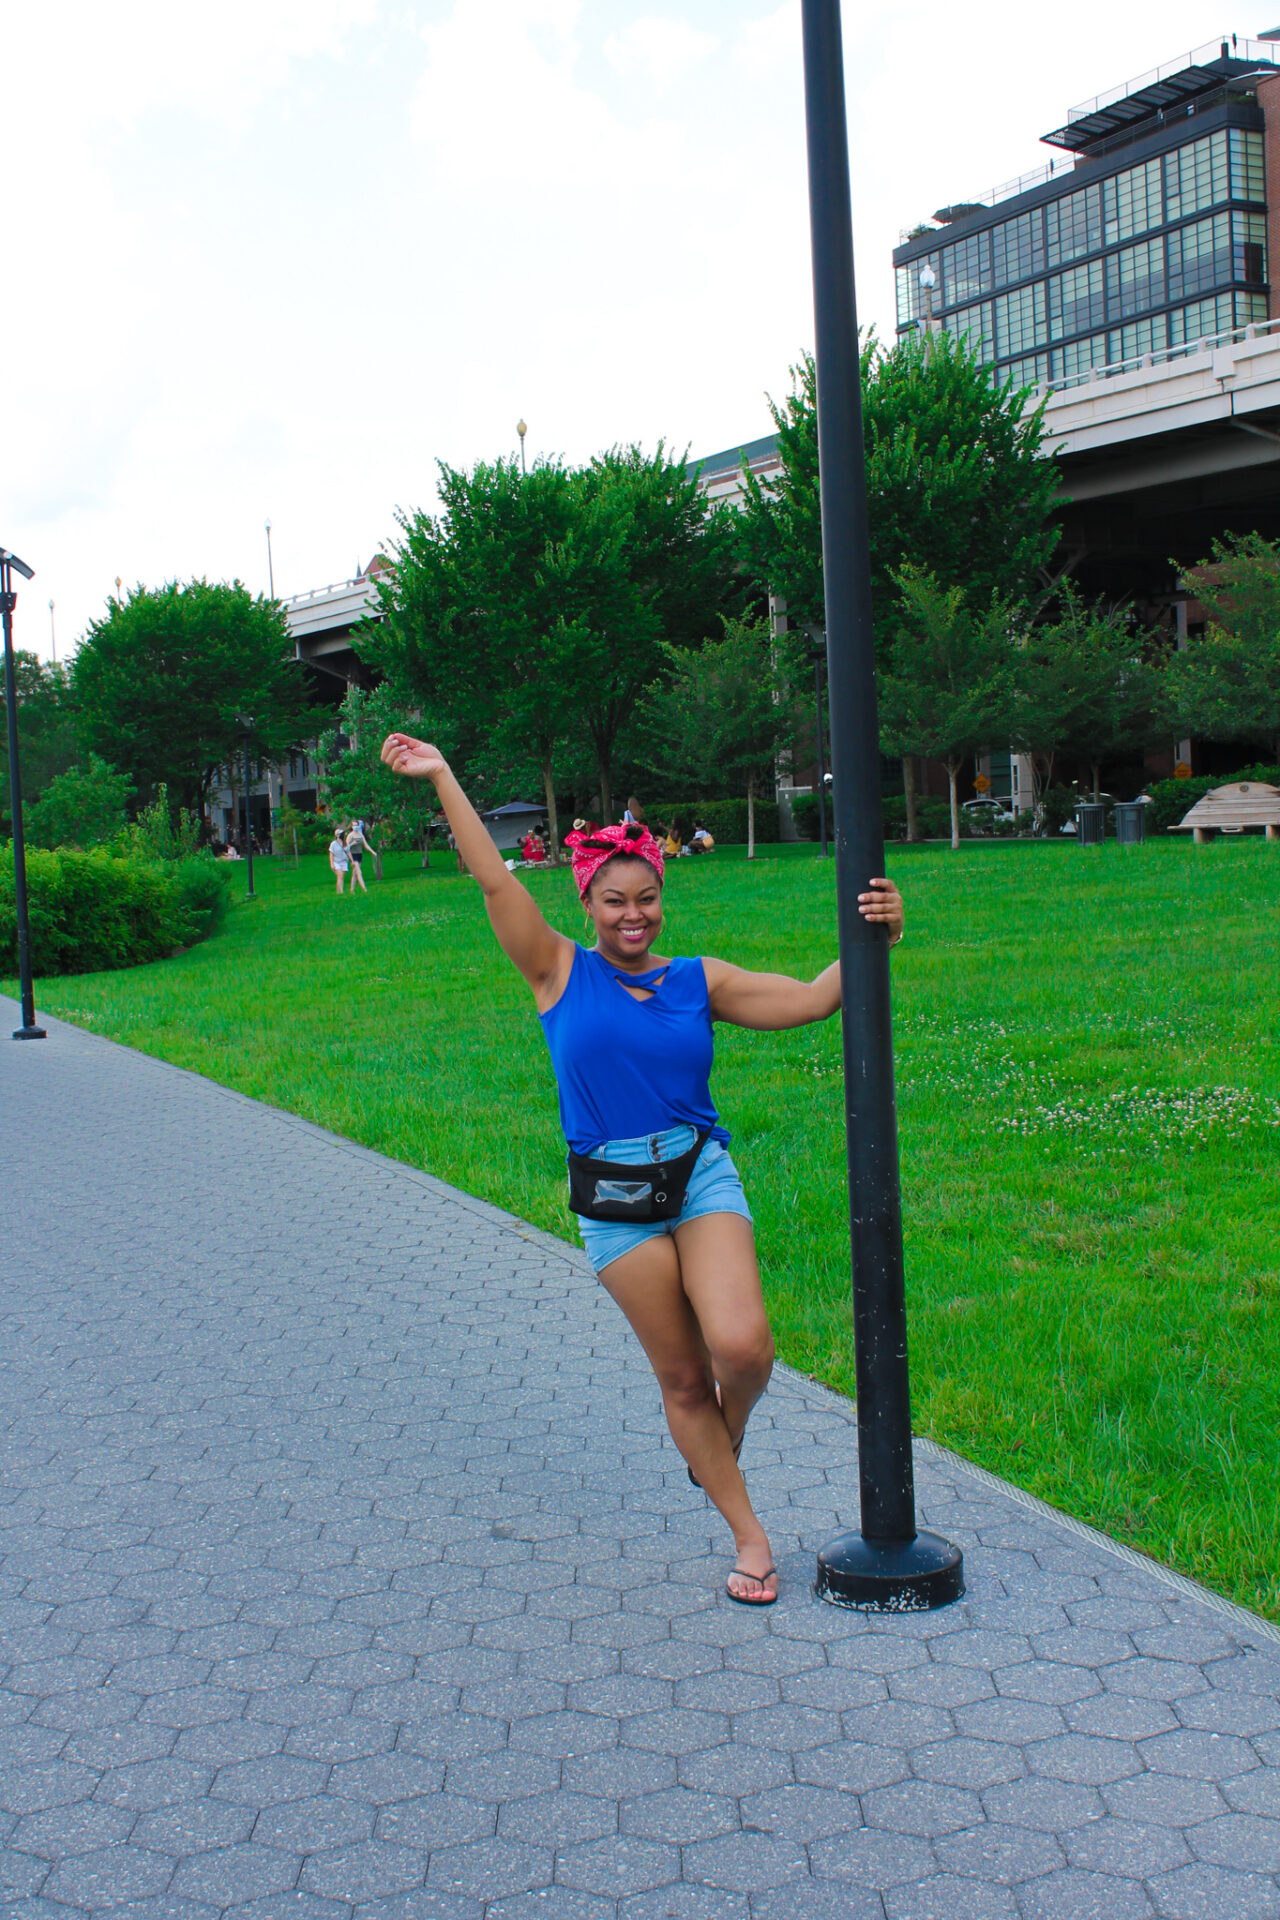 DC blogger, Rogan Smith of This Bahamian Gyal, swings on a pole in Georgetown, DC.